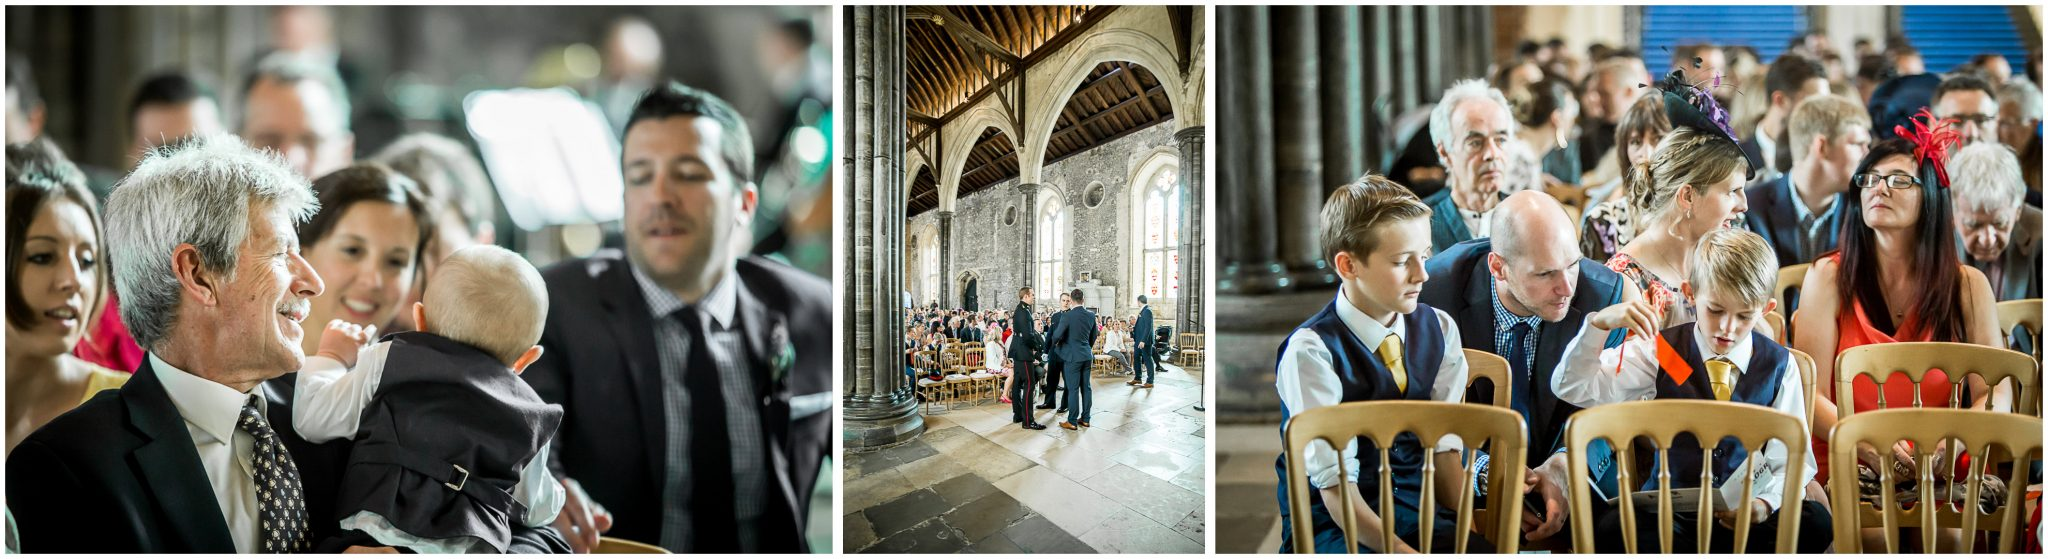 Winchester Great Hall wedding photography guests before ceremony